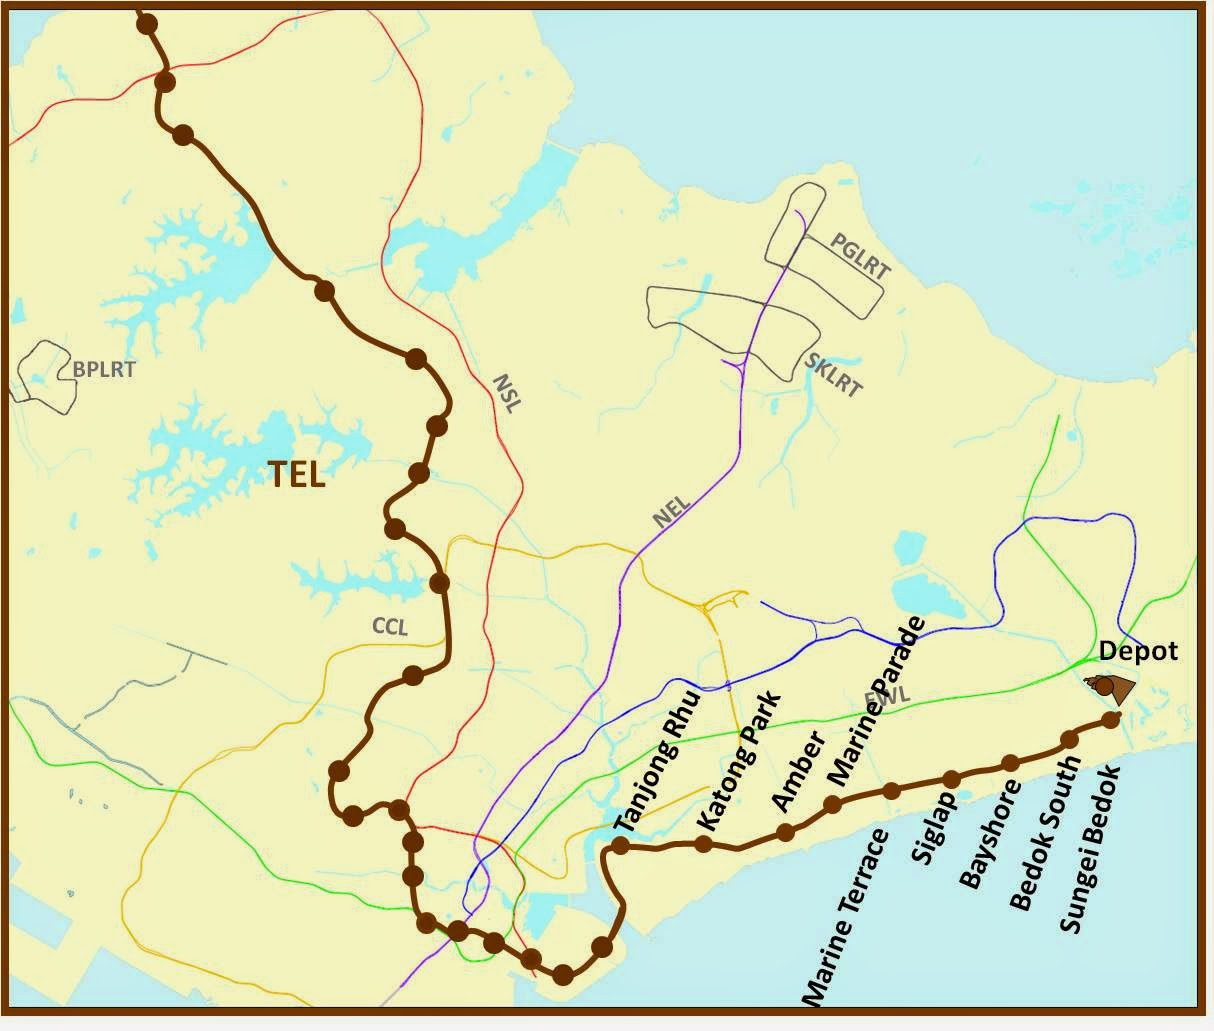 ... years late and merged with Thomson Line to be Thomson-East Coast Line